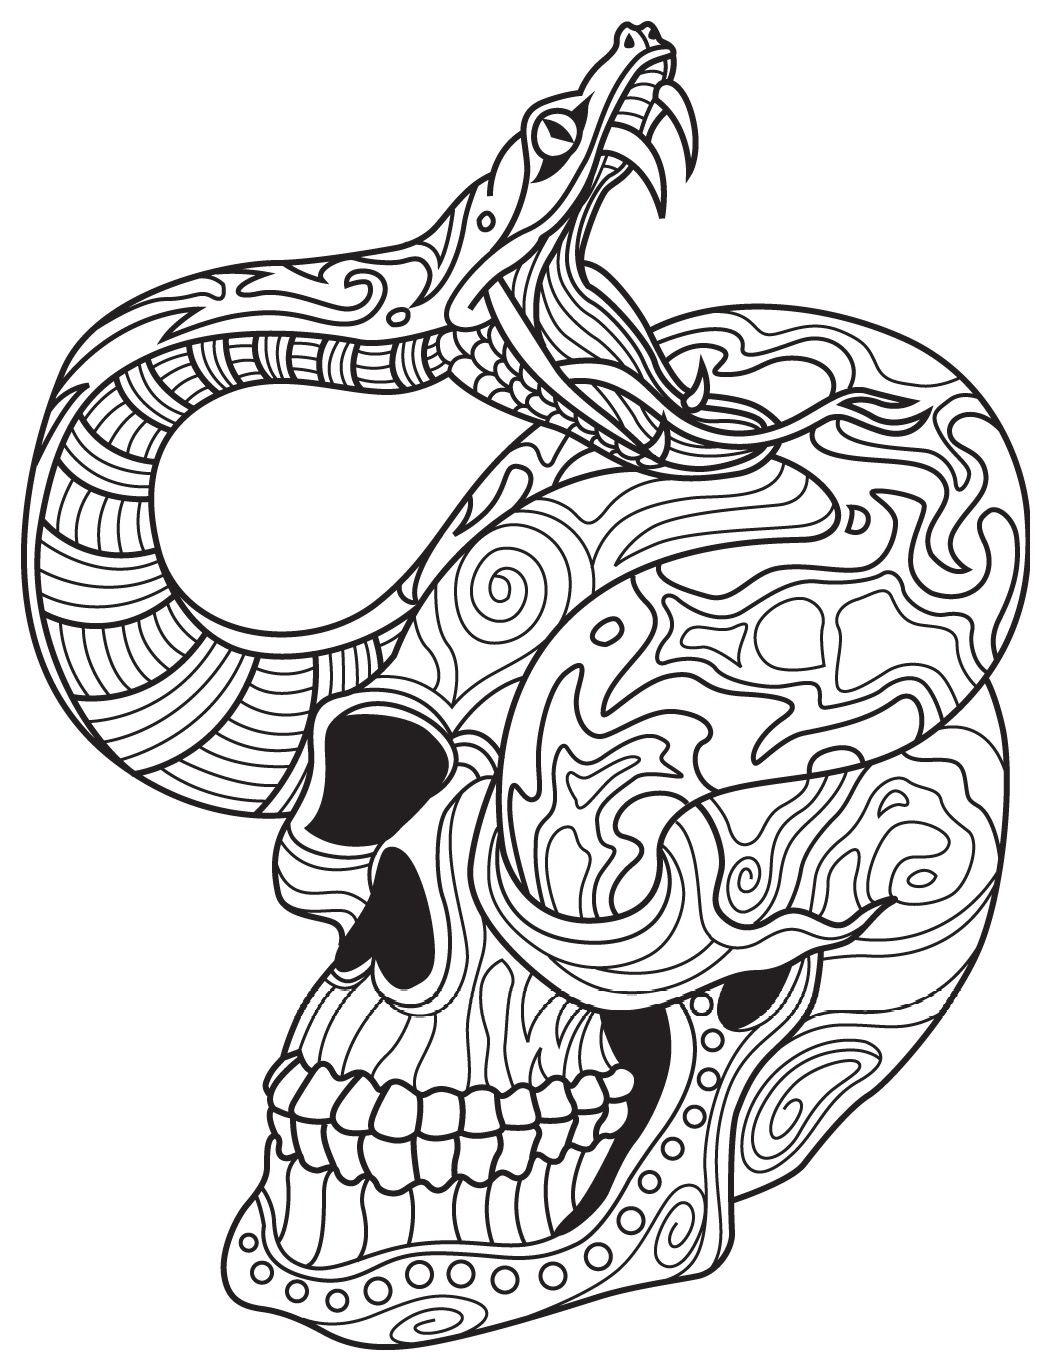 snake and skull colorish coloring book app for adults by